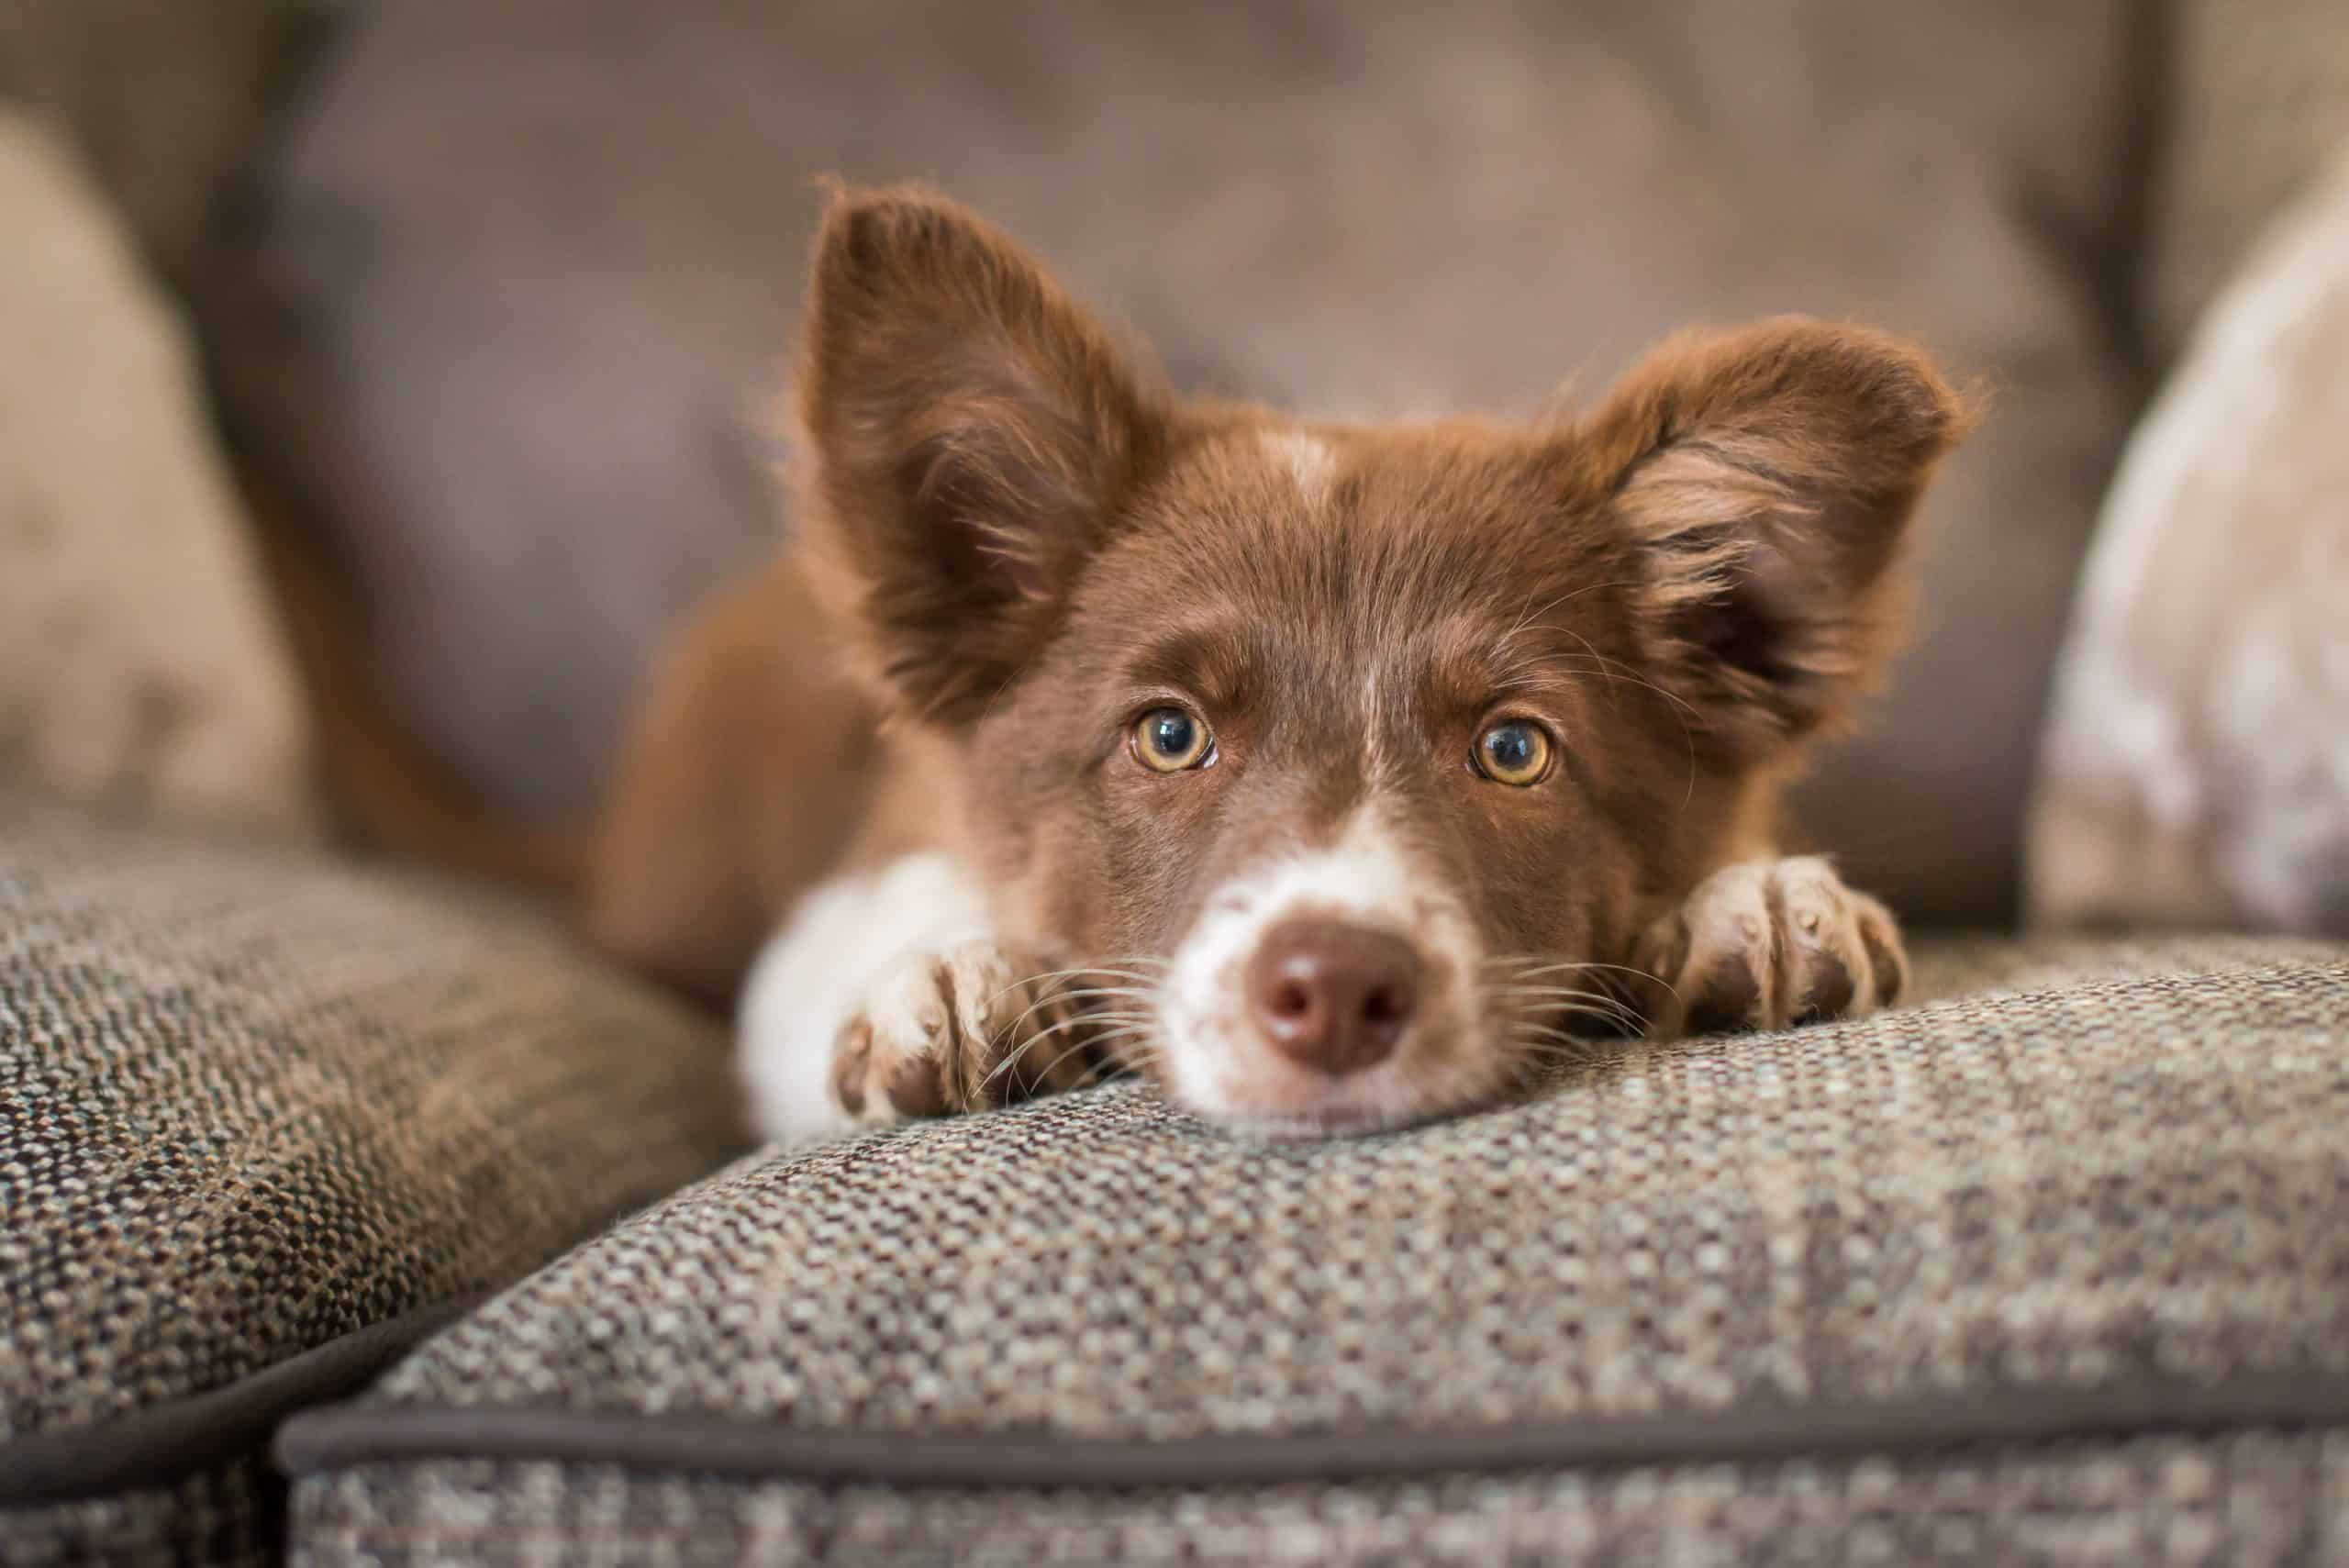 Australian Shepherd relaxes on a couch. CBD products can be used to alleviate anxiety and panic attacks, reduce stress, and achieve a state of relaxation.